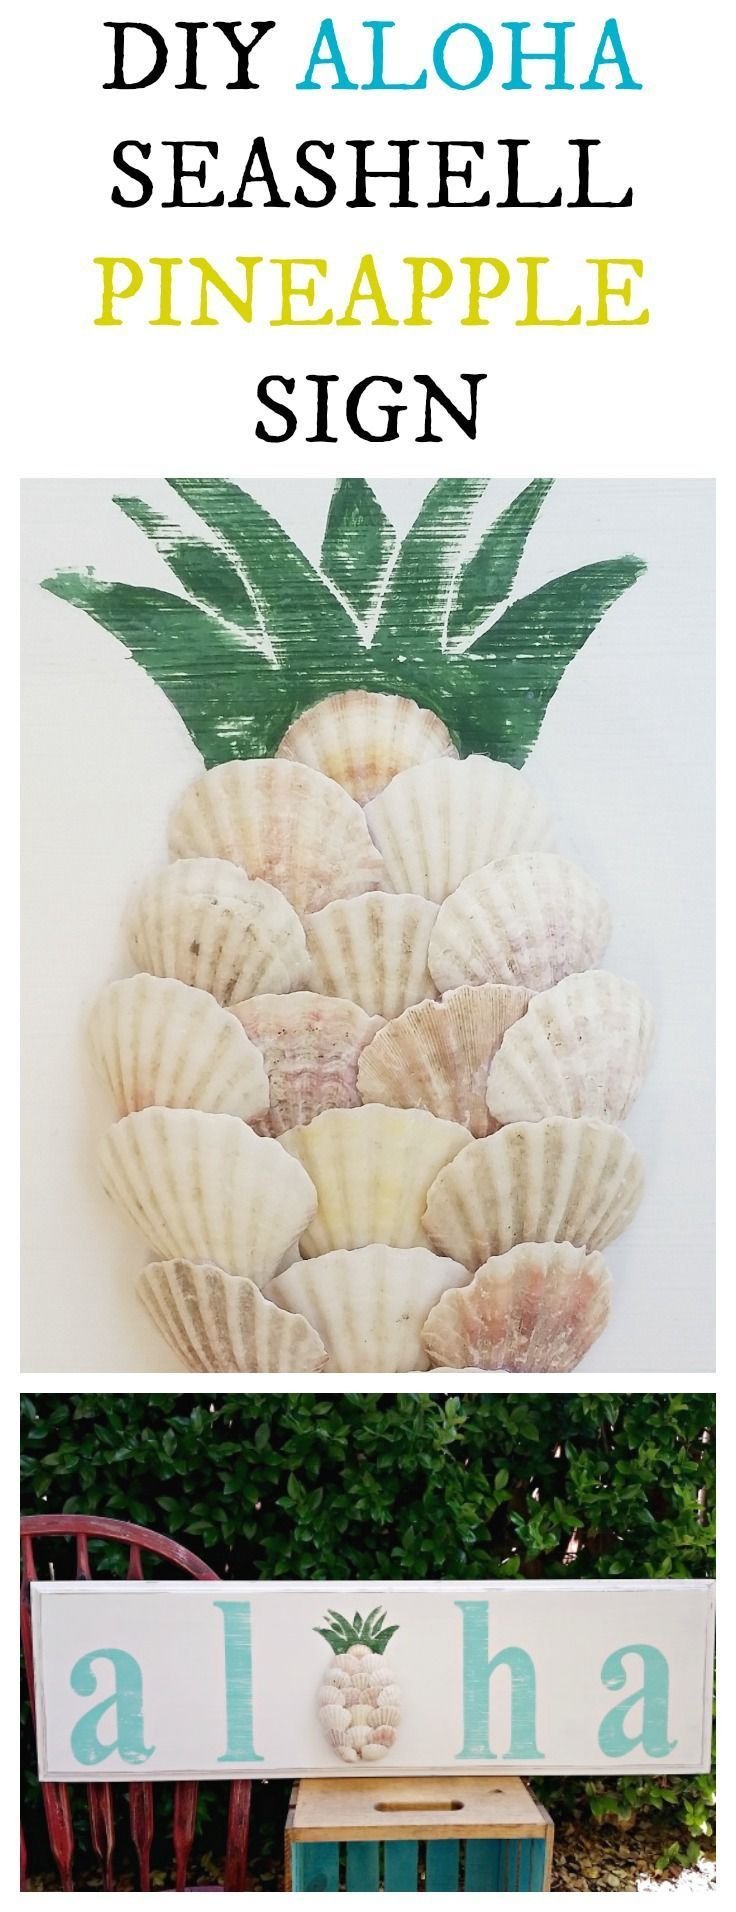 DIY ALOHA SEASHELL PINEAPPLE SIGN: This thrift store upcycle will make the cutest summer decor!